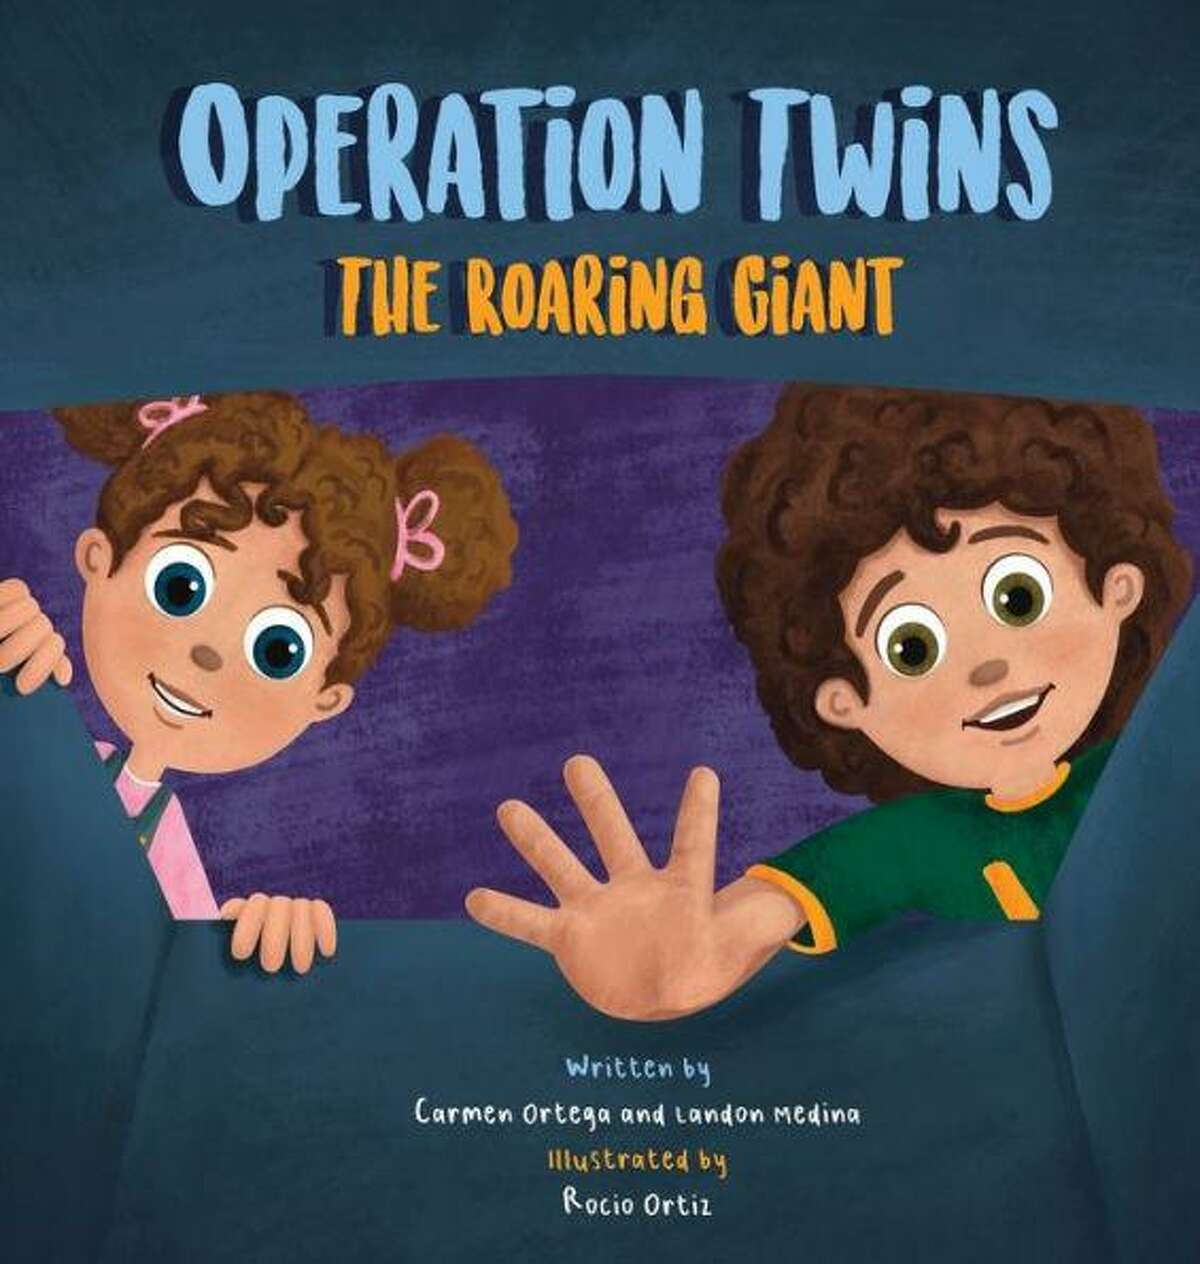 """Conroe mother and son Carmen Ortega and Landon Medina have authored a new children's book """"Operation Twins The Roaring Giant."""" The book is available through Barnes and Noble."""